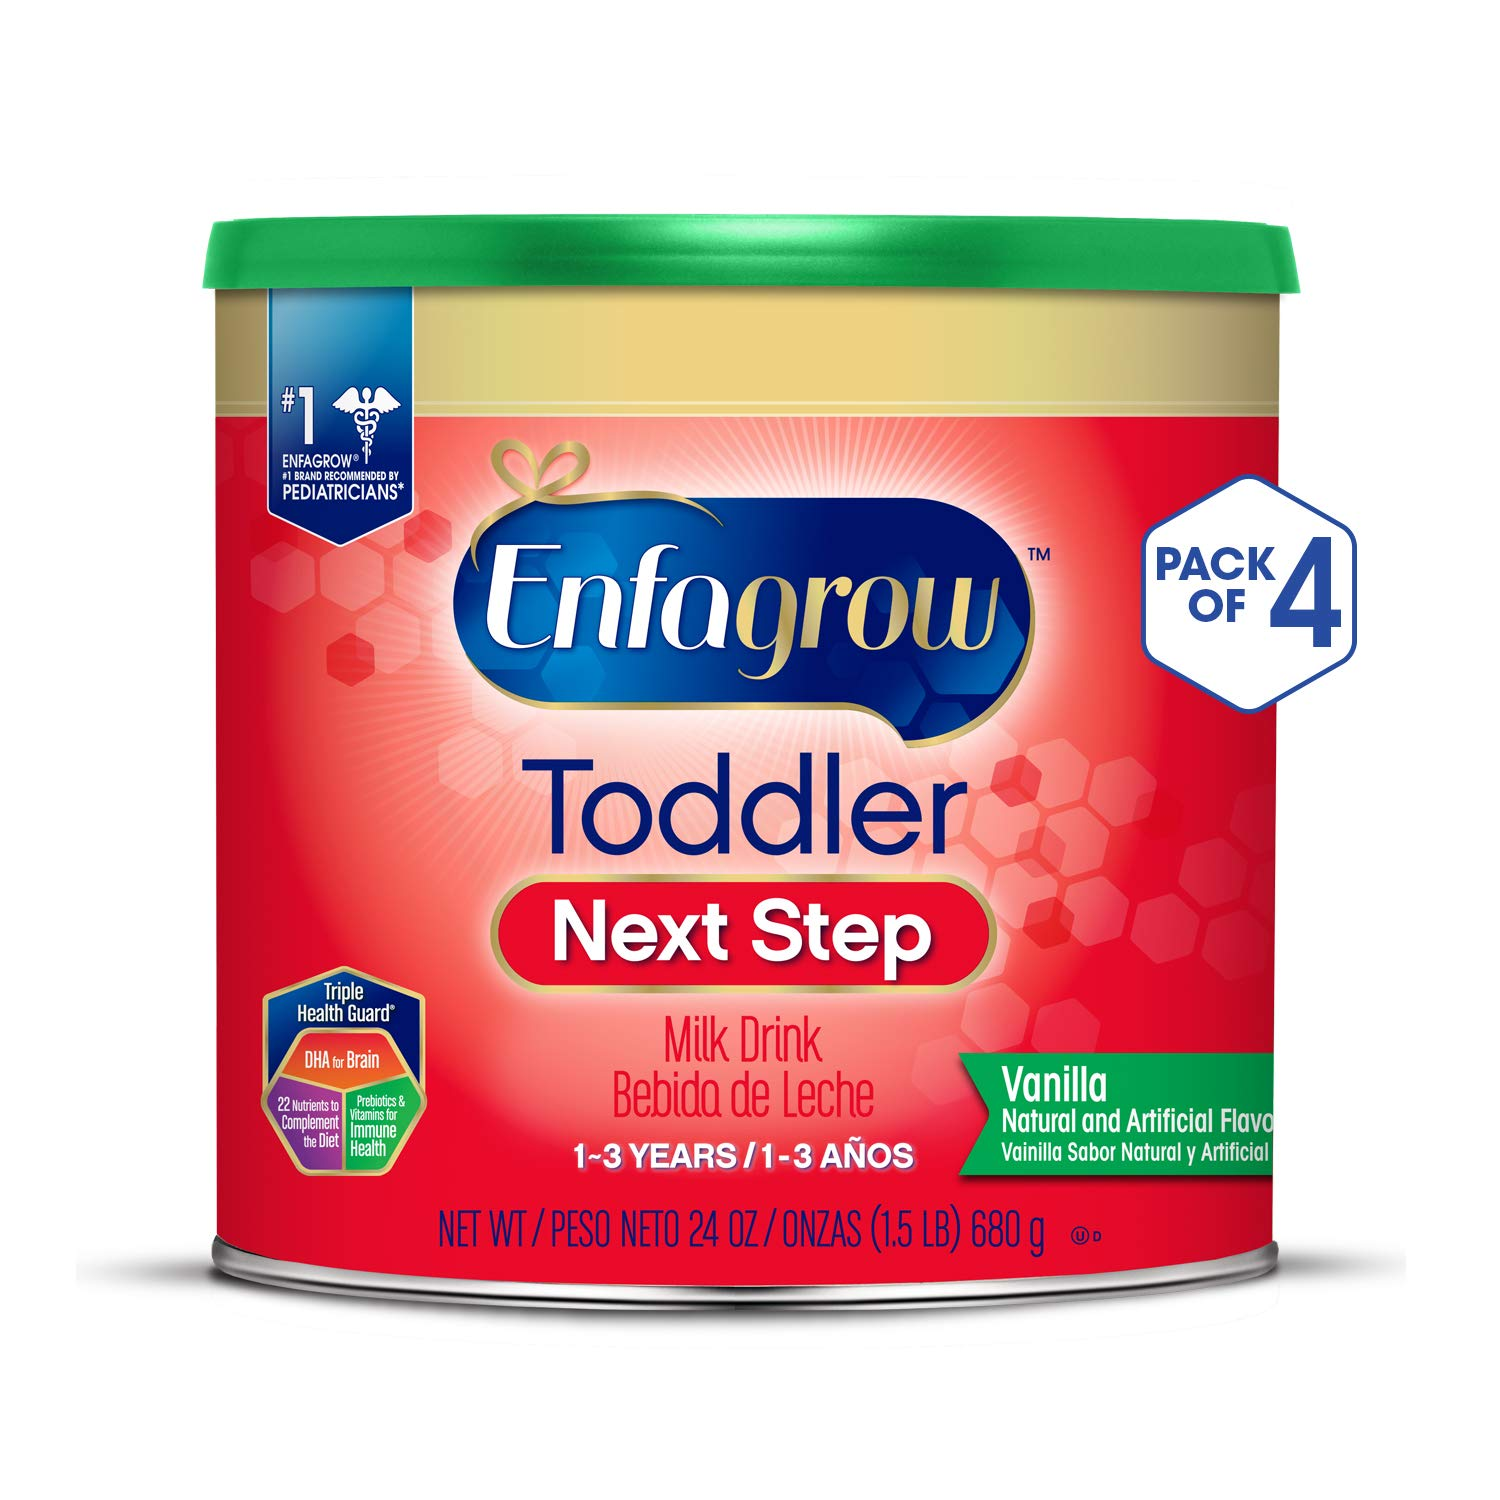 Enfagrow Toddler Next Step, Vanilla Flavor